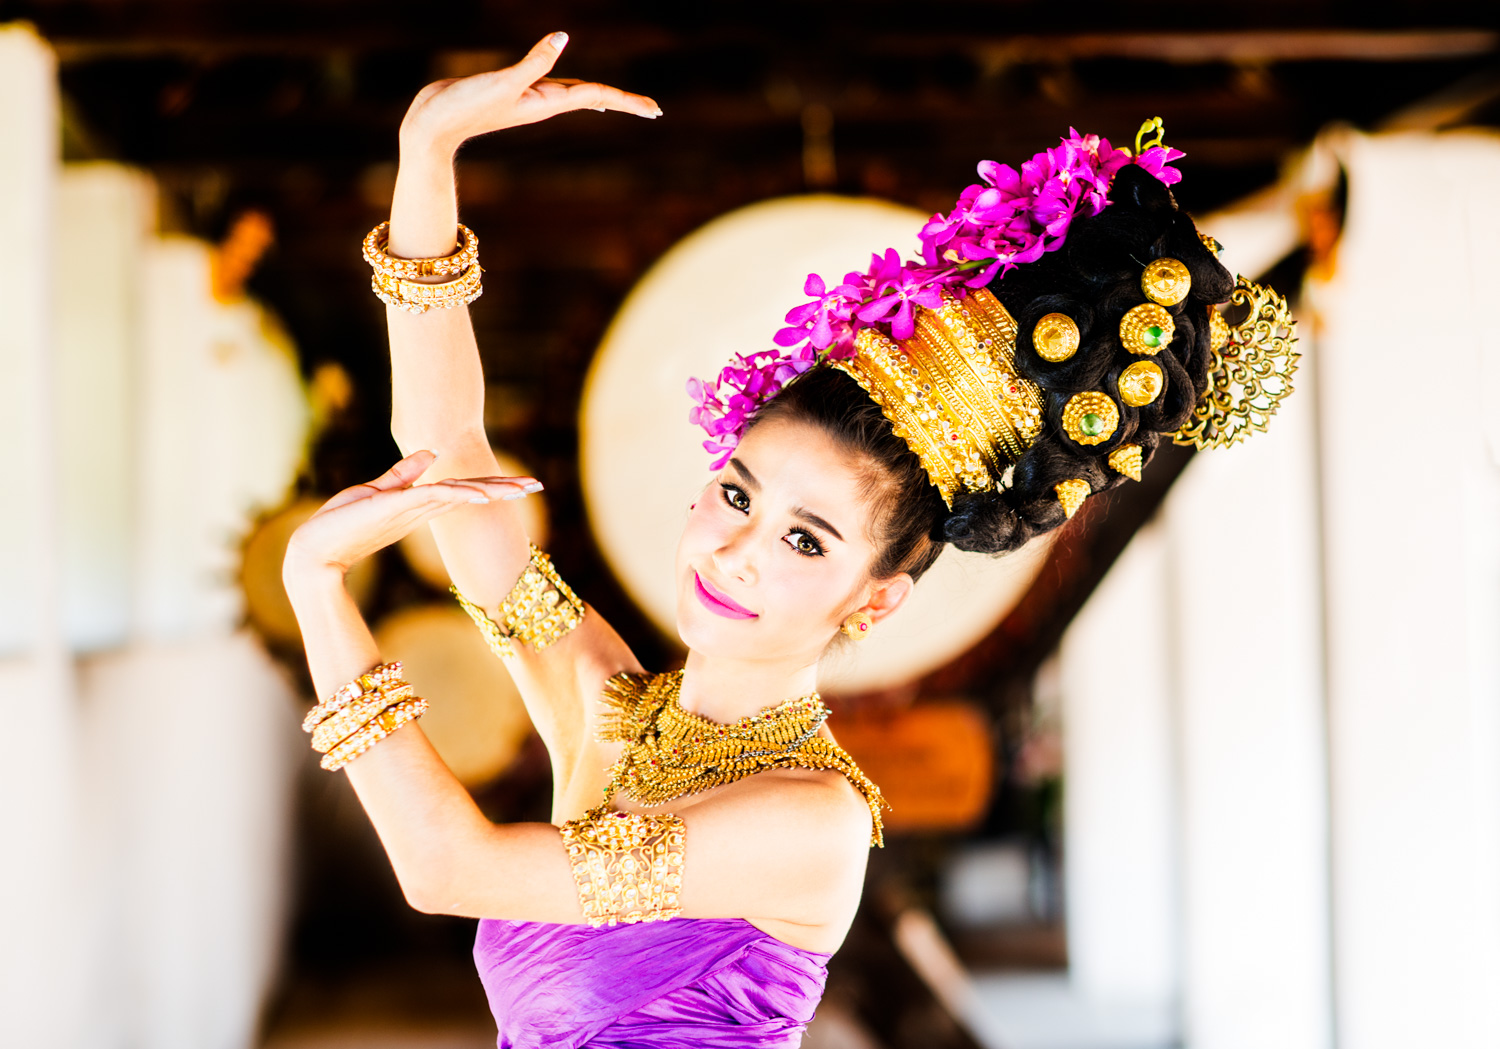 Moving to manual mode to photograph a Thai dancer